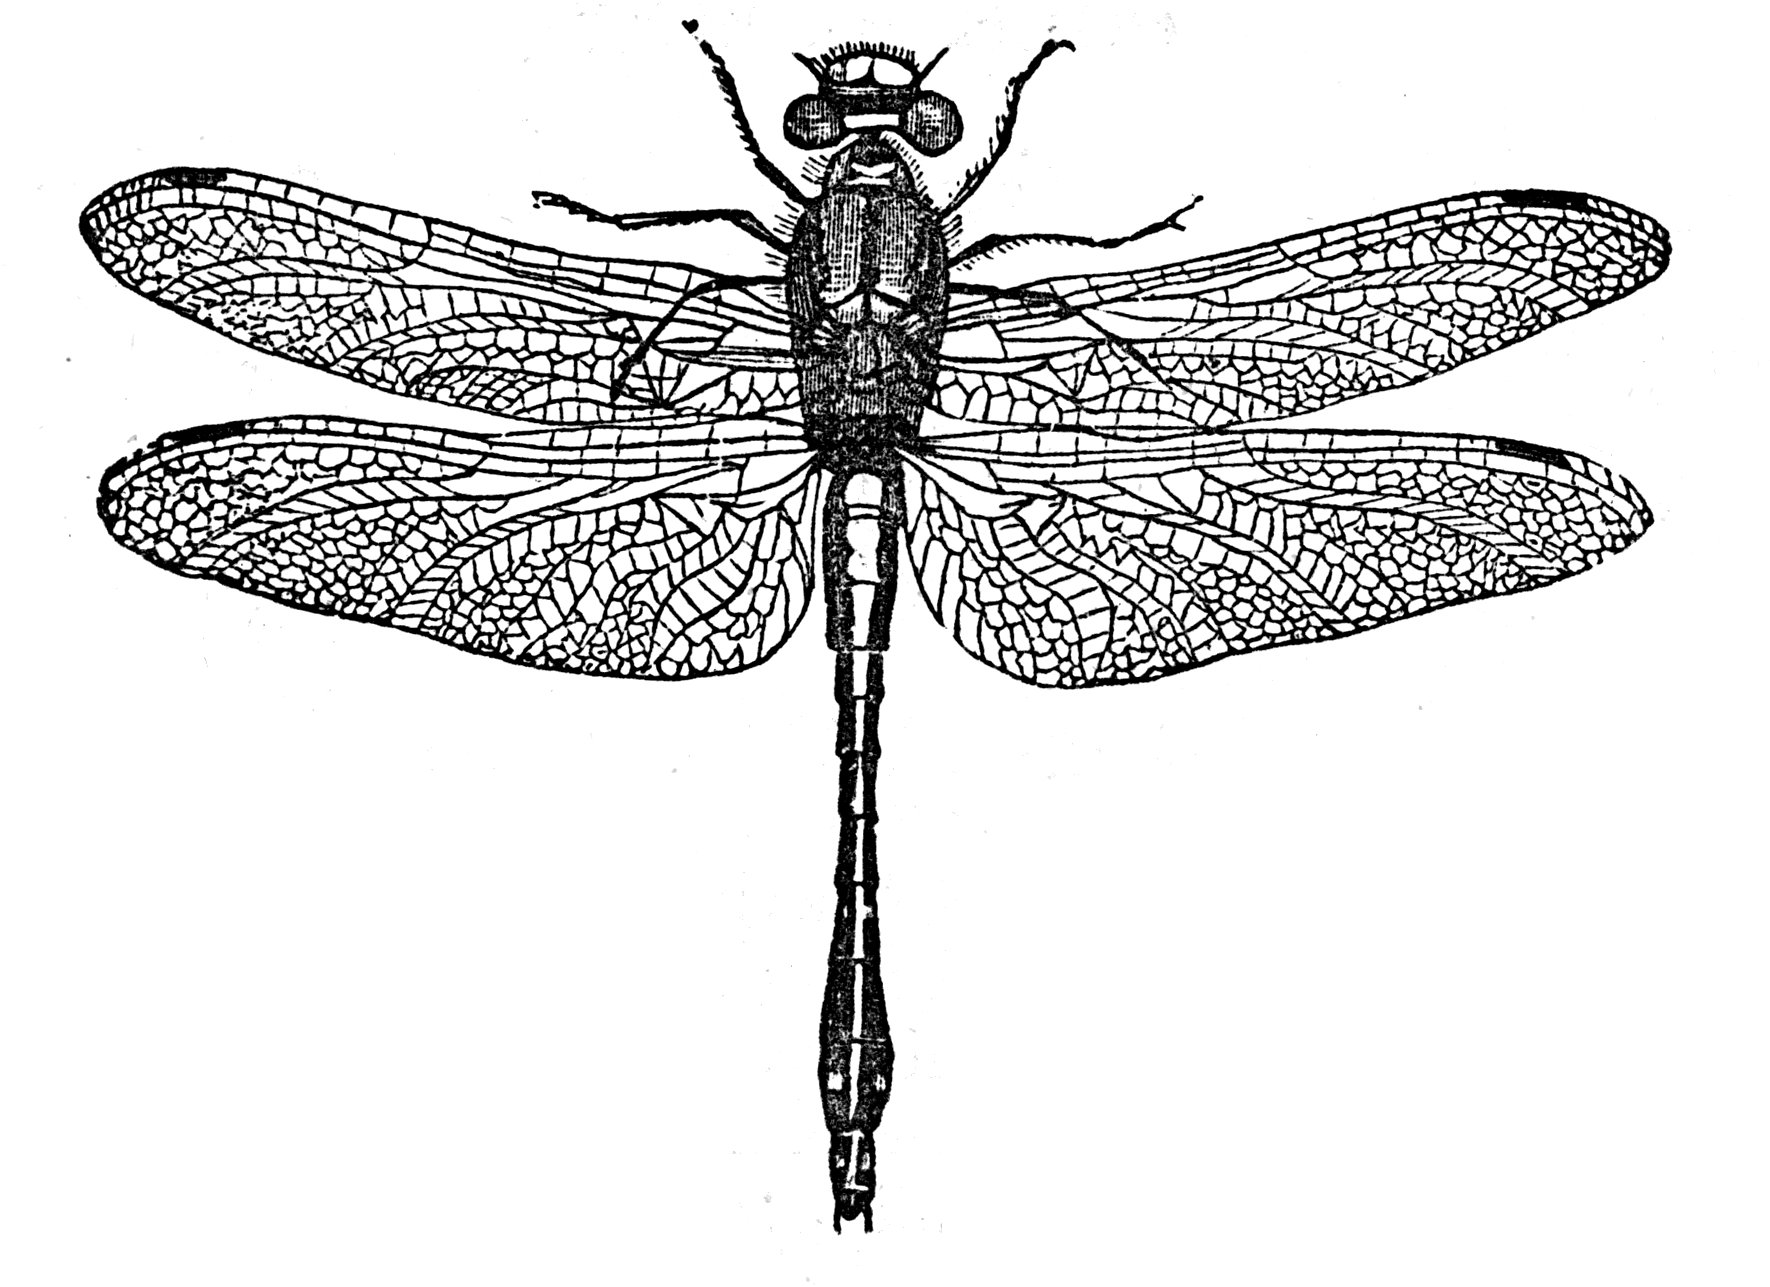 insect essay Insects essays: over 180,000 insects essays, insects term papers, insects research paper, book reports 184 990 essays, term and research papers available for.